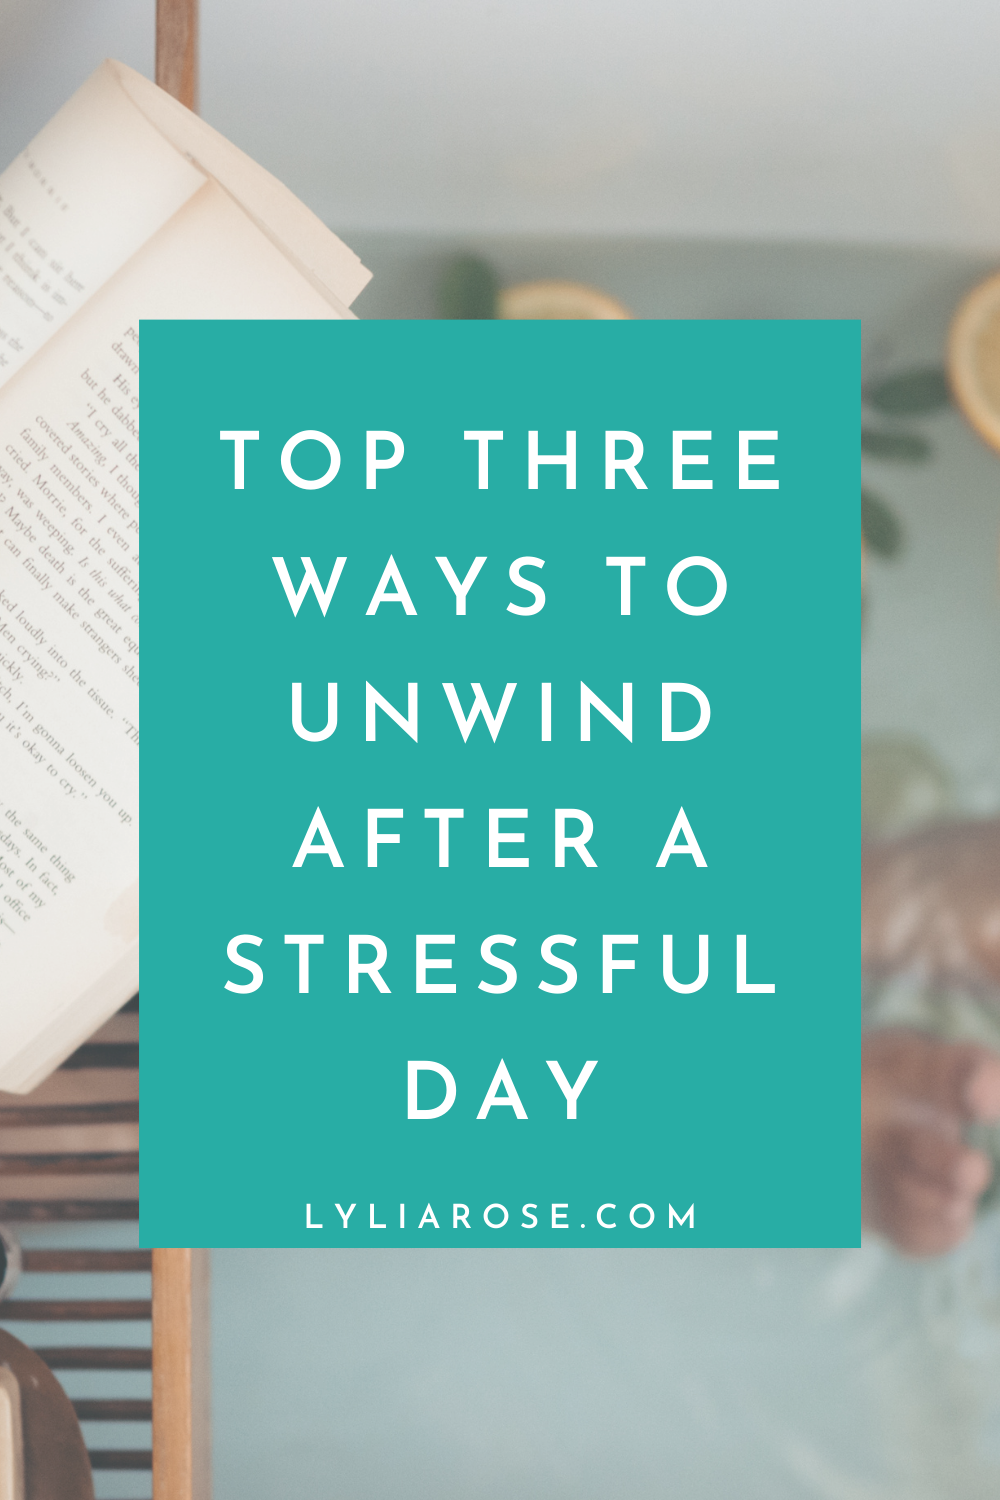 Top three ways to unwind after a stressful day